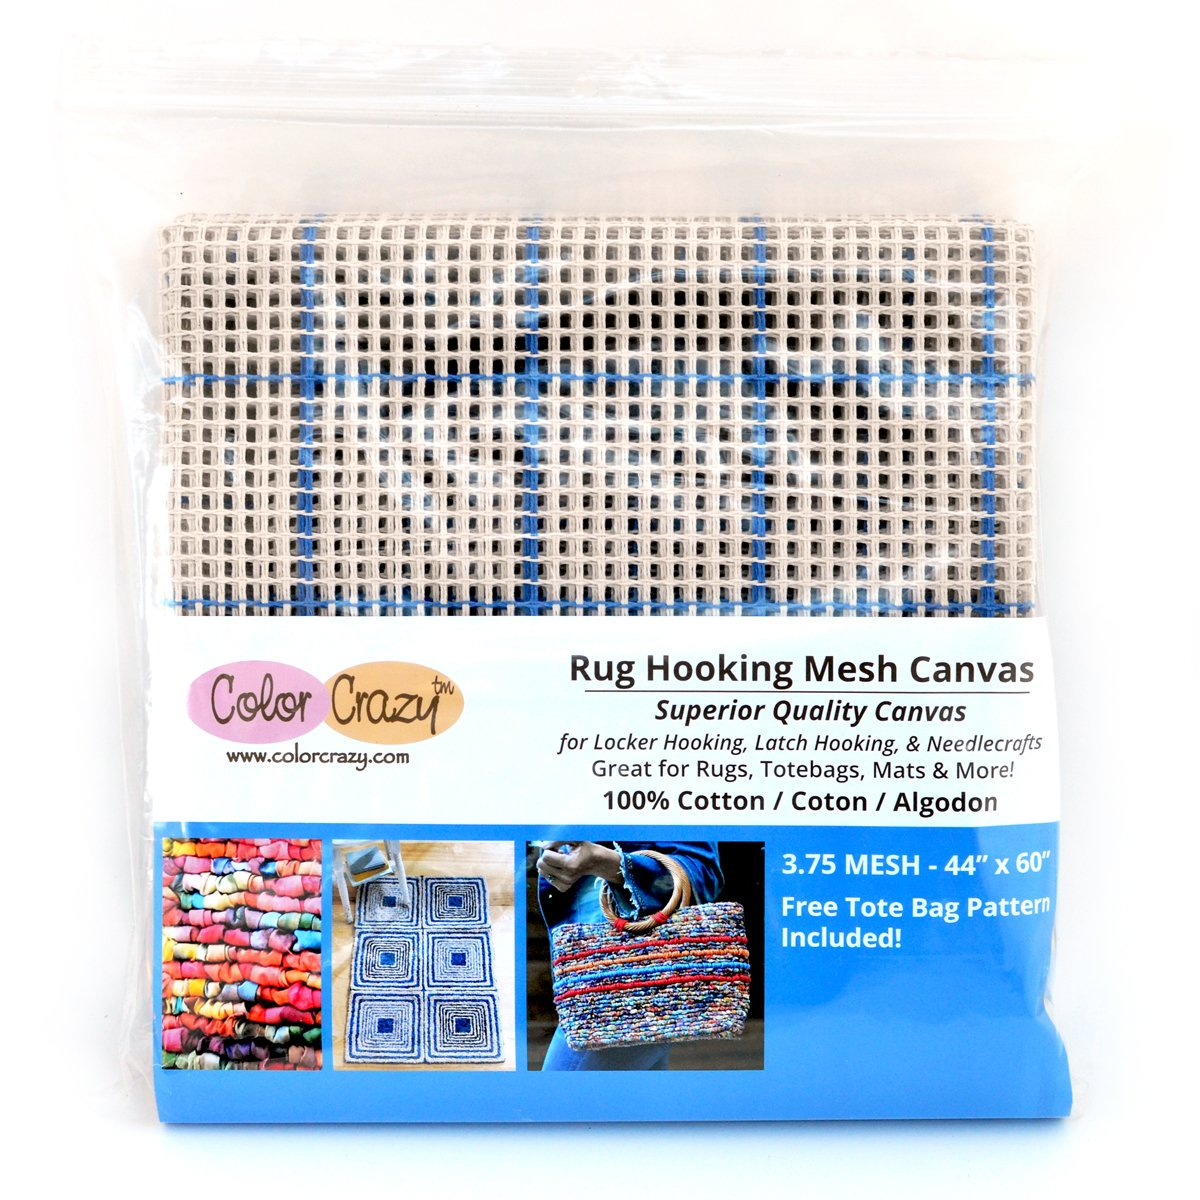 Rug Hooking Mesh Canvas - 3.75 Mesh (44 x 60) with Free Pattern Color Crazy